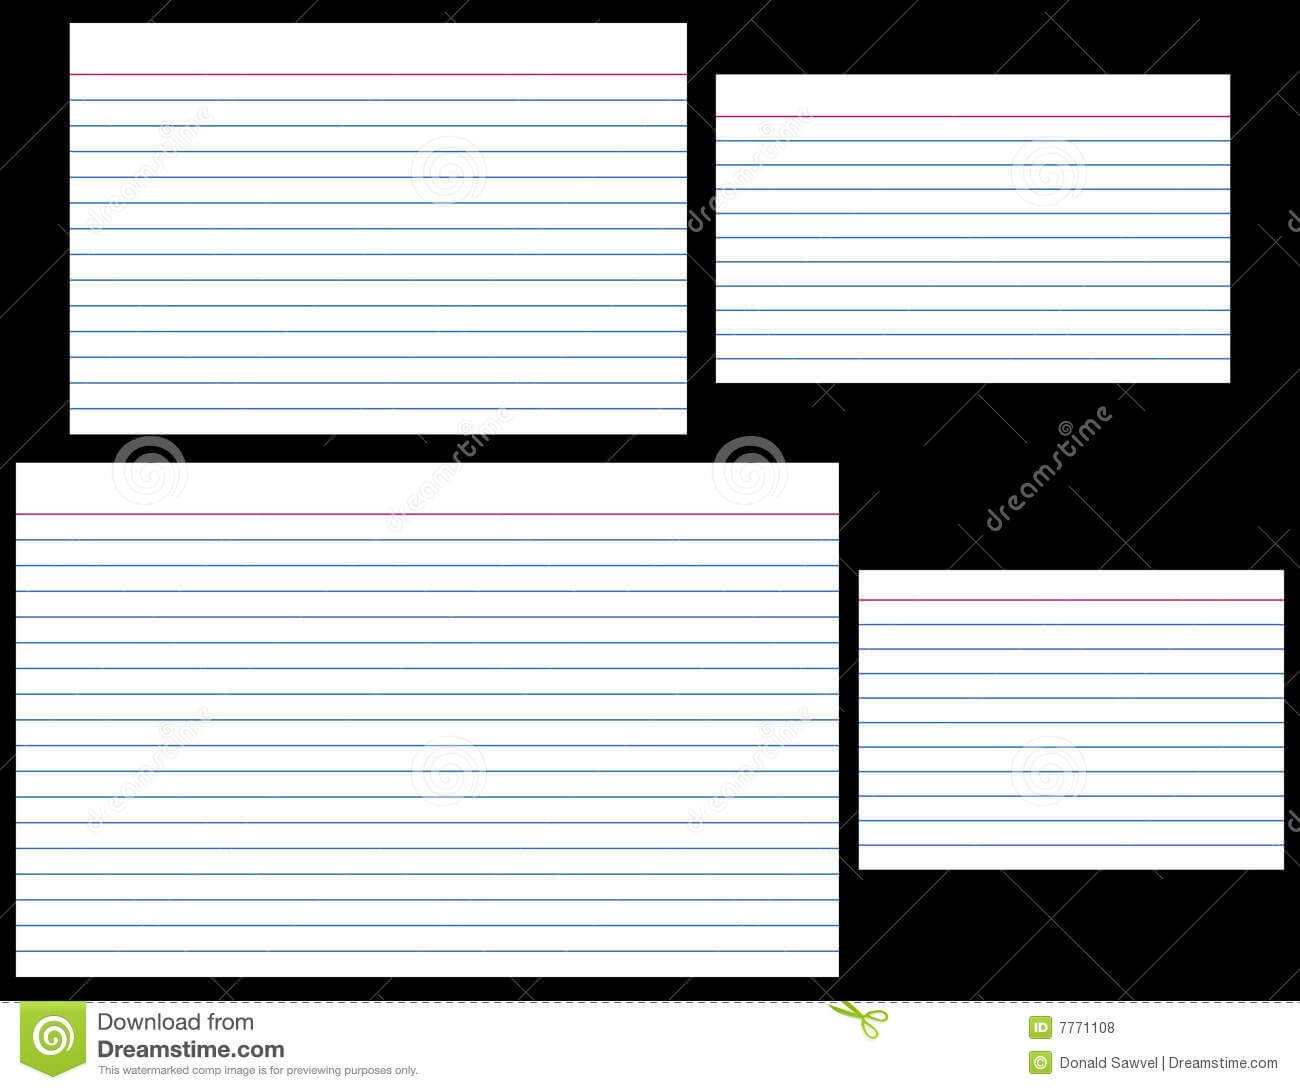 4×6 Note Cards | Brainmaxx within 4X6 Note Card Template Word